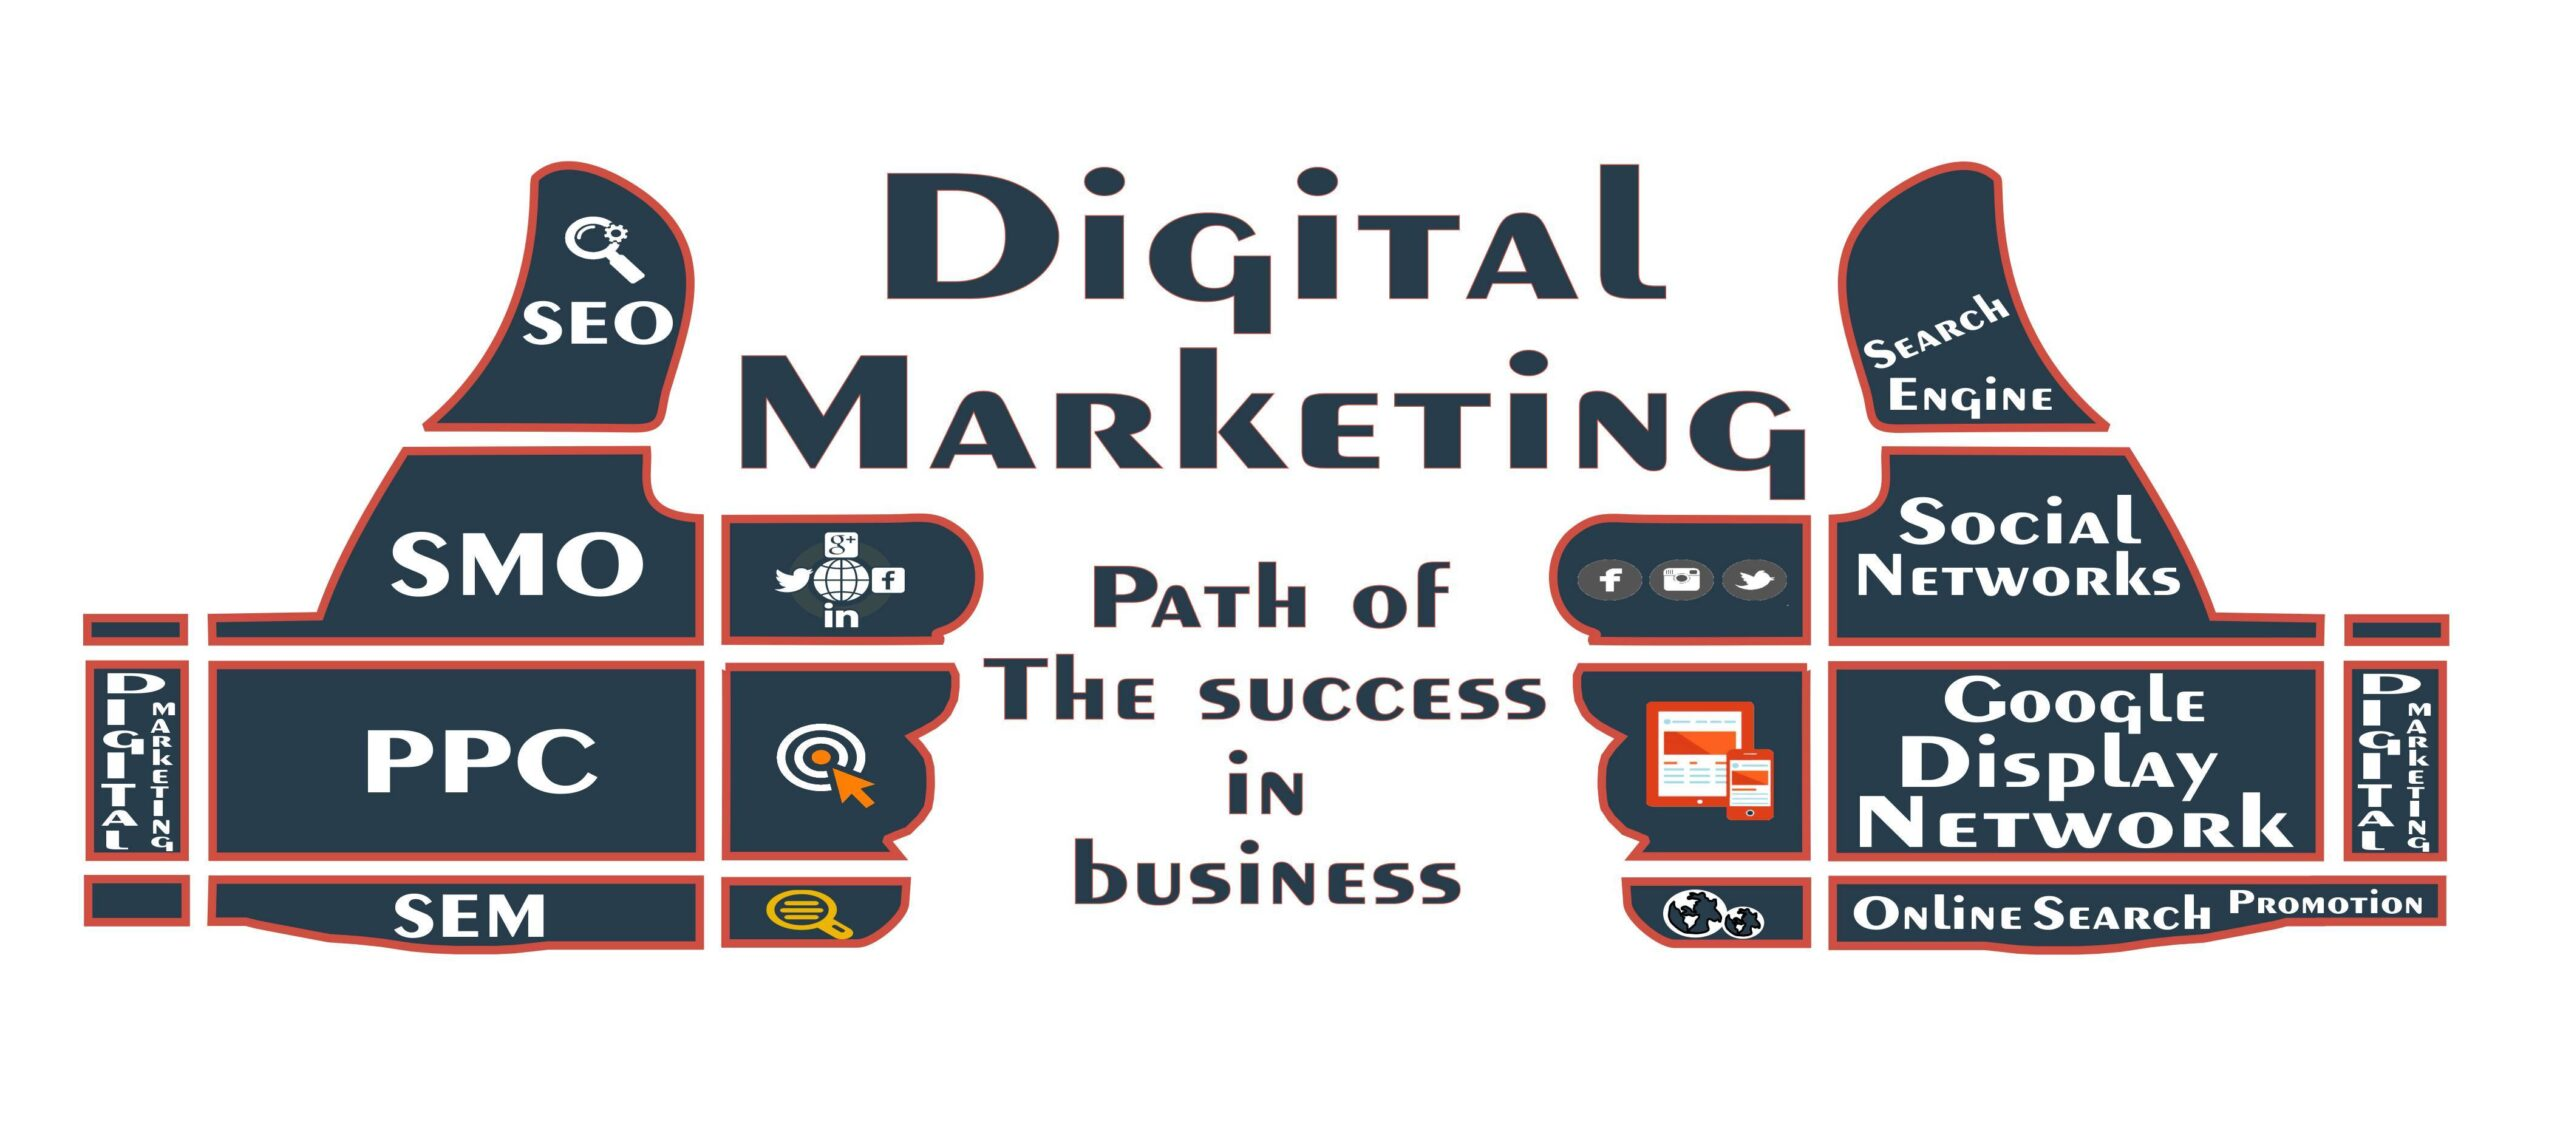 Digital Marketing Services: What is Its Role and Types?